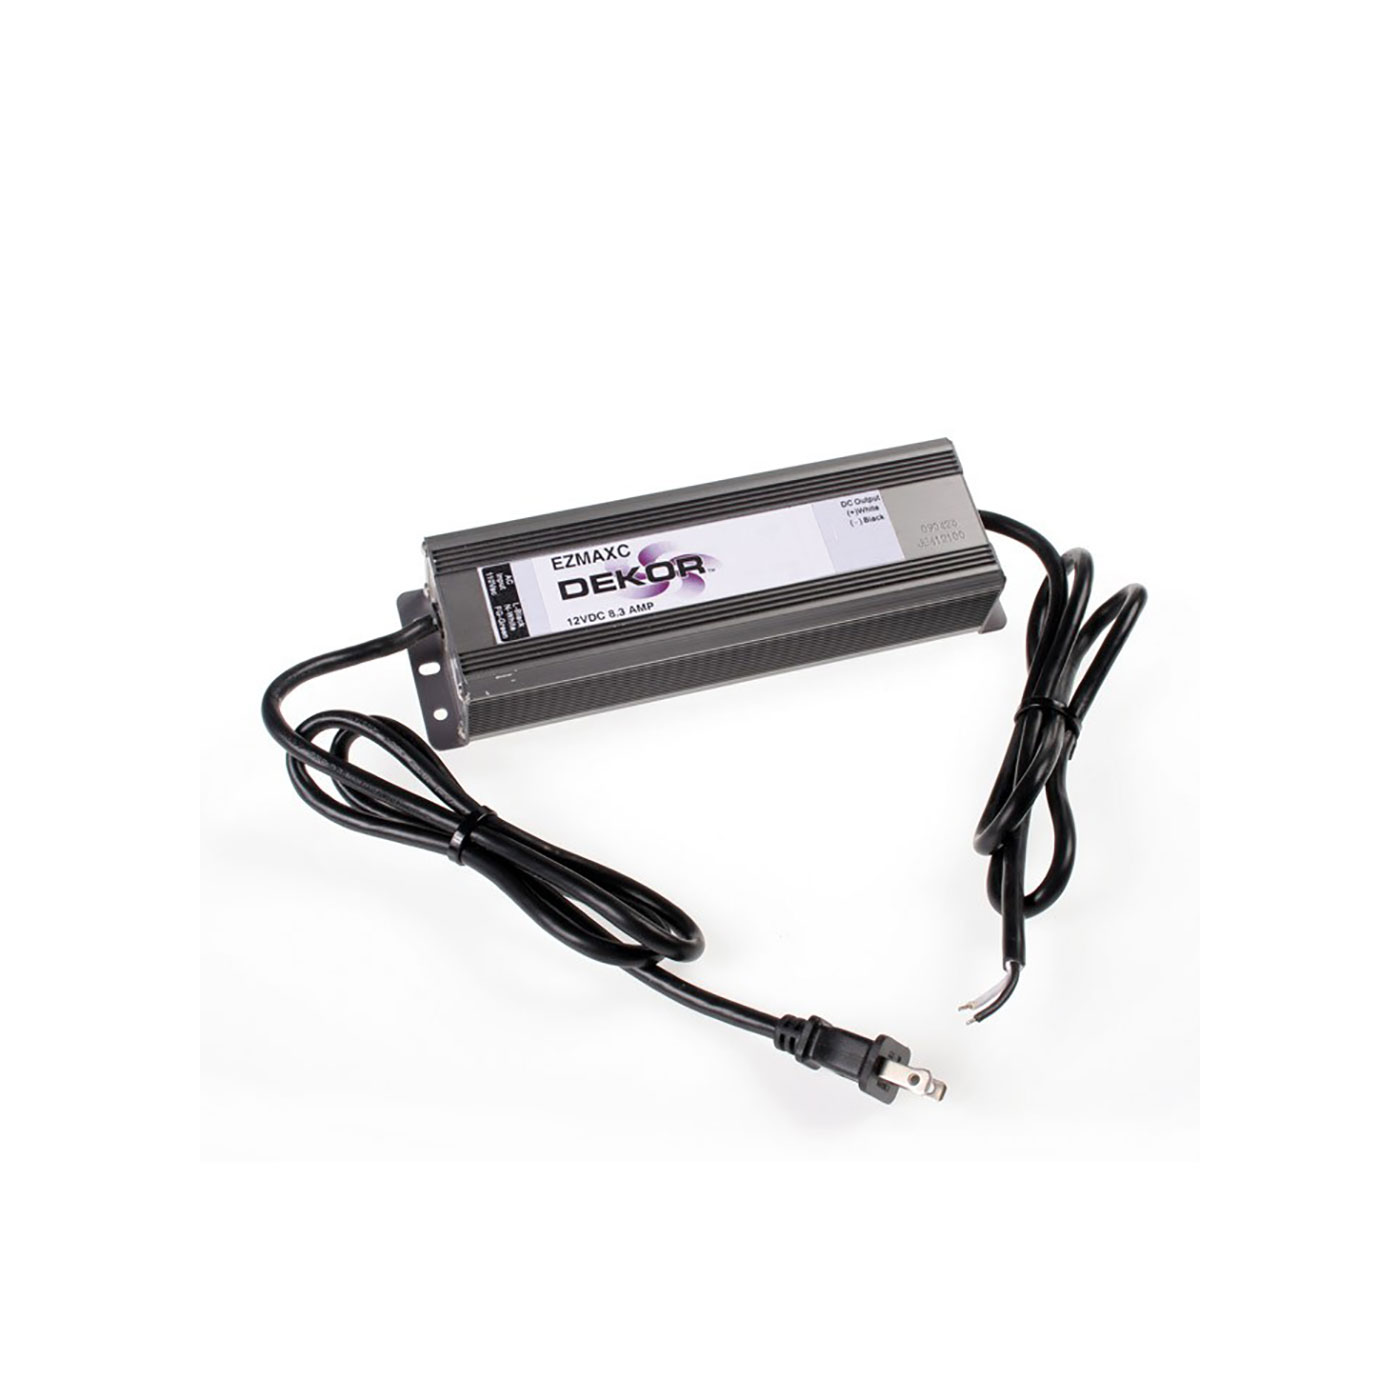 EZMAXC LED Transformer 100 Watt 12VDC